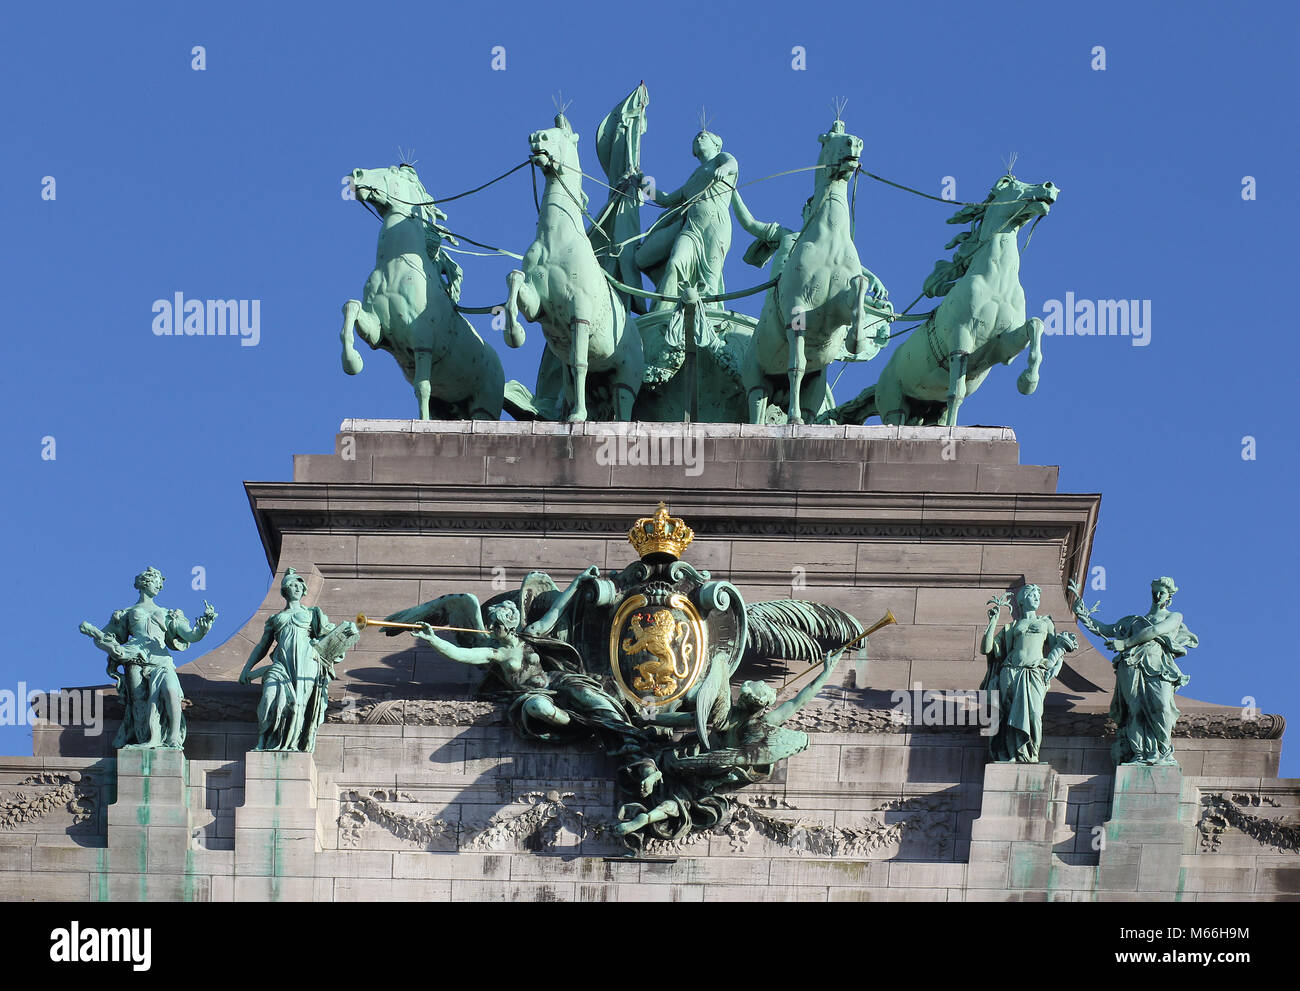 Triumphal arch in Cinquantenaire Park , Brussels Belgium, commemorating the fiftieth anniversary of Belgian independence. - Stock Image